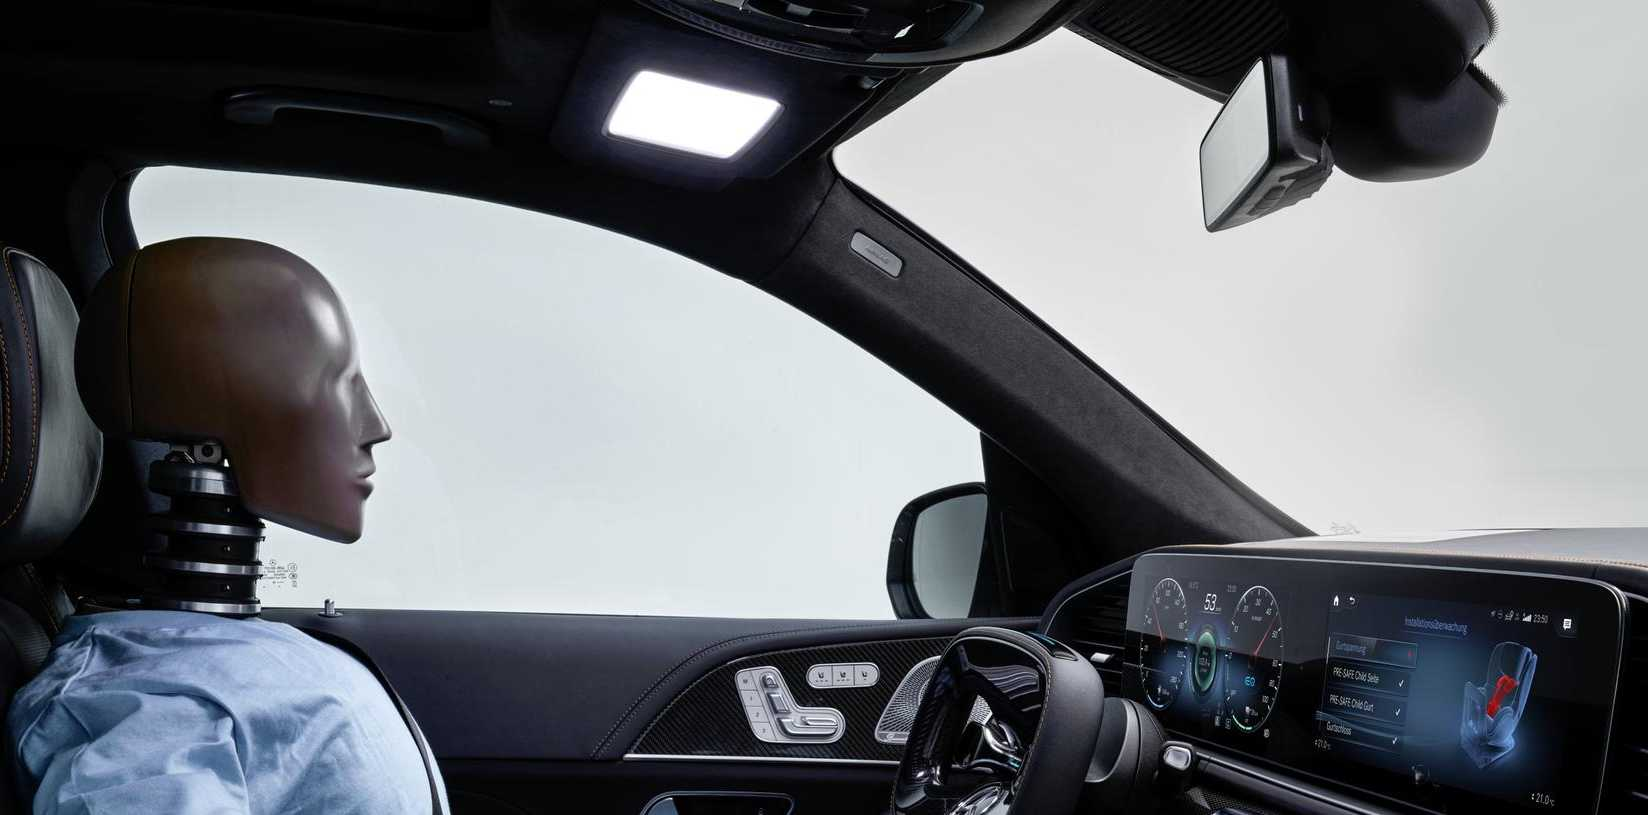 Mercedes vitalising interior light: The sunvisor mimics daylight to keep drivers alert